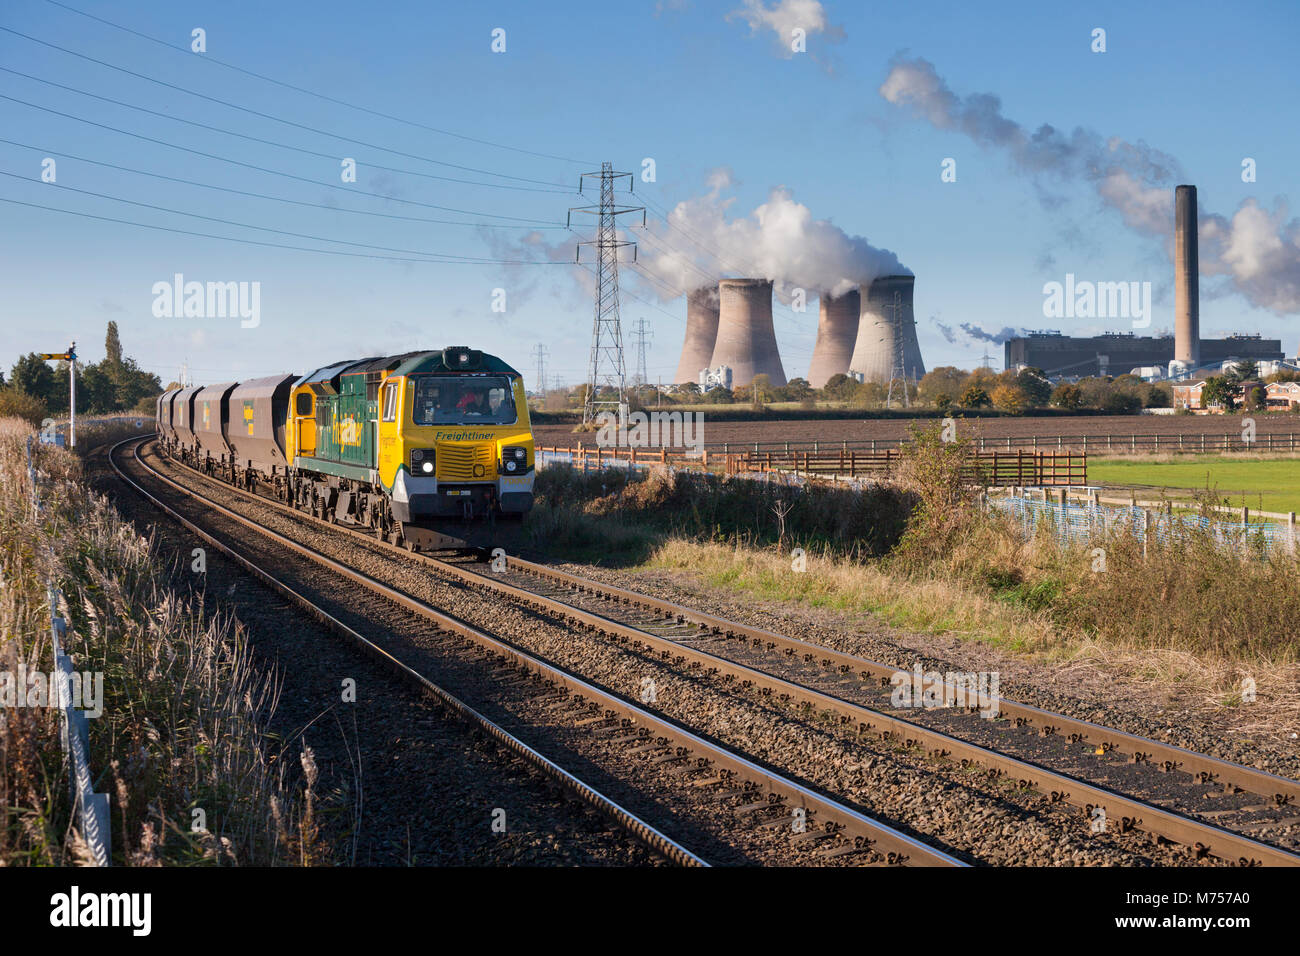 A Freightliner class 70 locomotive at  Penketh Hall with an empty merry go round coal train from  Fiddlers ferry Stock Photo